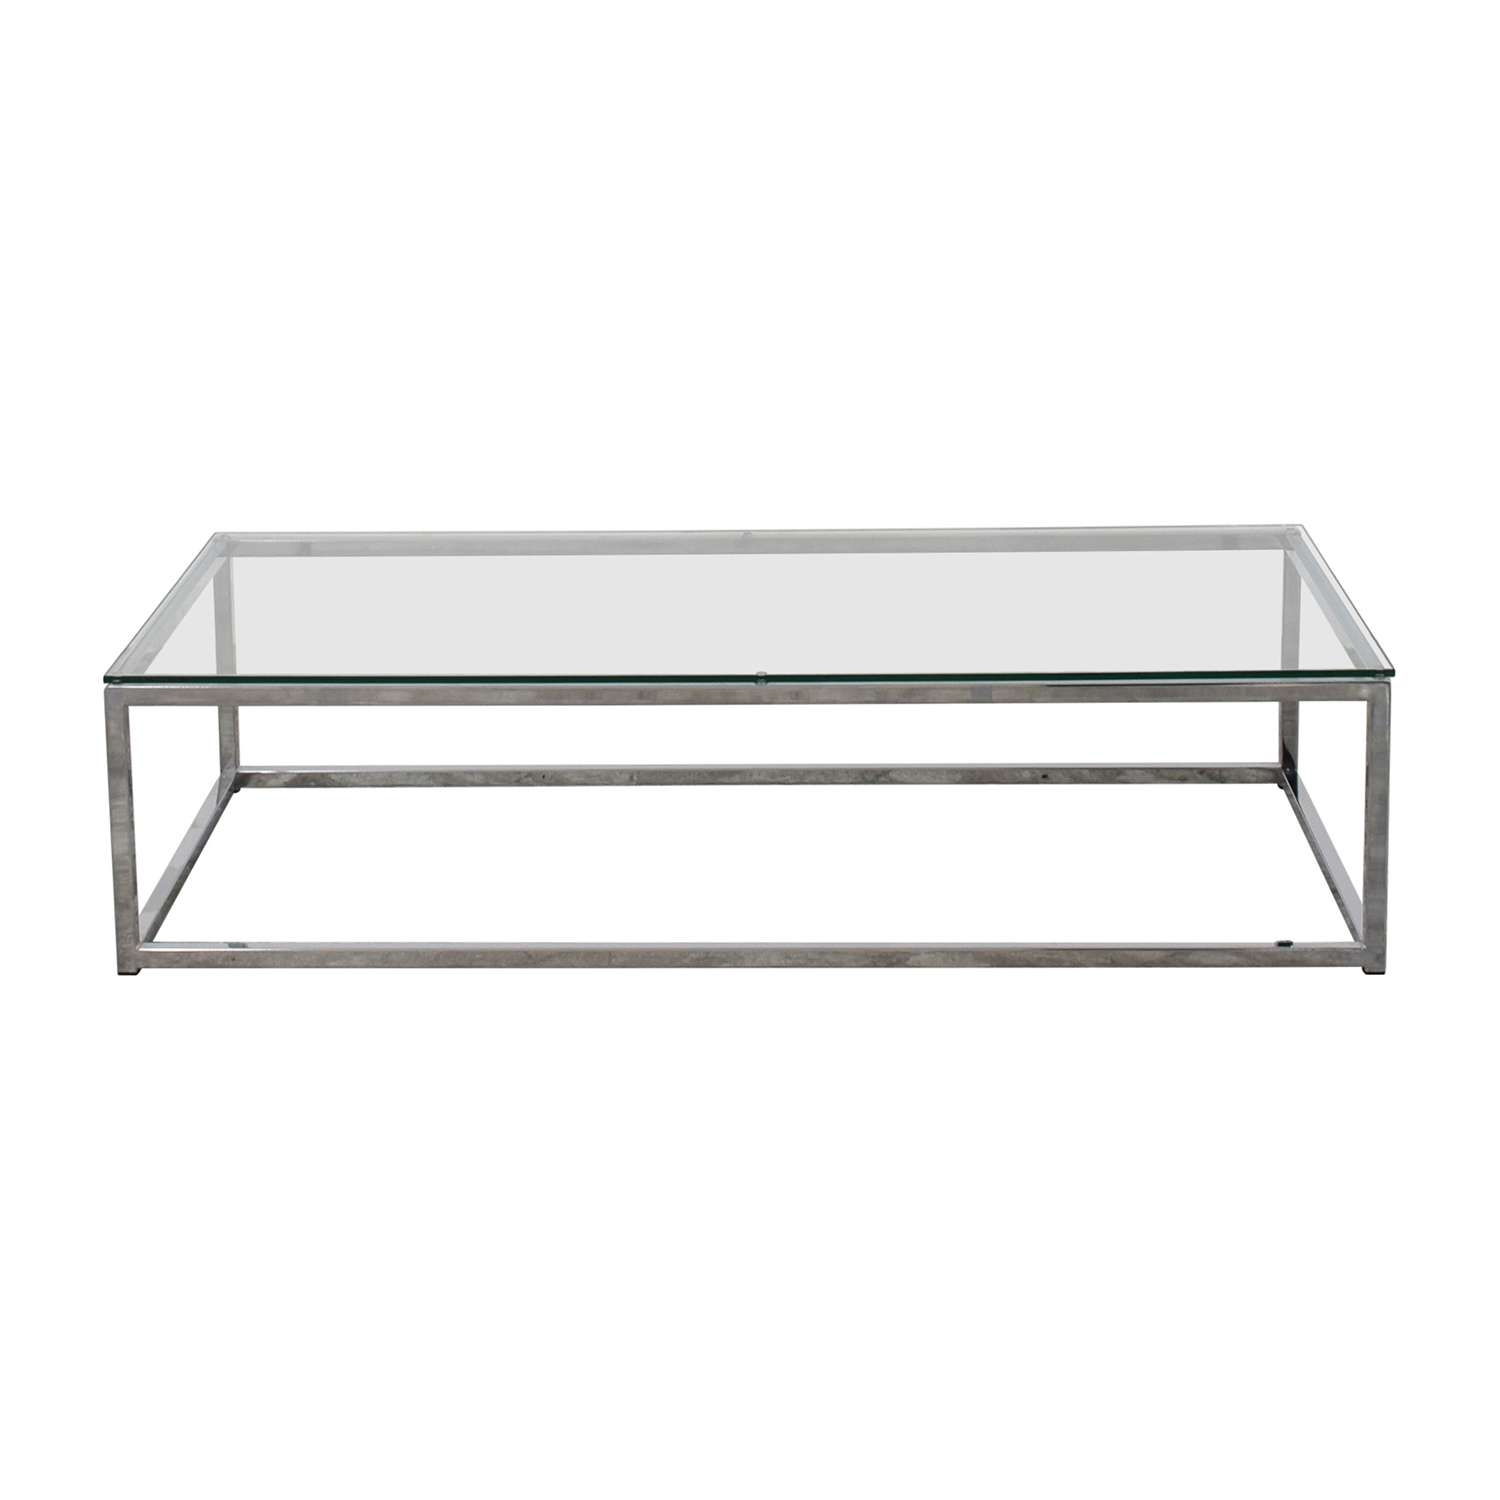 [%Most Recent Glass Chrome Coffee Tables Throughout 45% Off – Cb2 Cb2 Glass And Chrome Coffee Table / Tables|45% Off – Cb2 Cb2 Glass And Chrome Coffee Table / Tables With Newest Glass Chrome Coffee Tables%] (View 1 of 20)